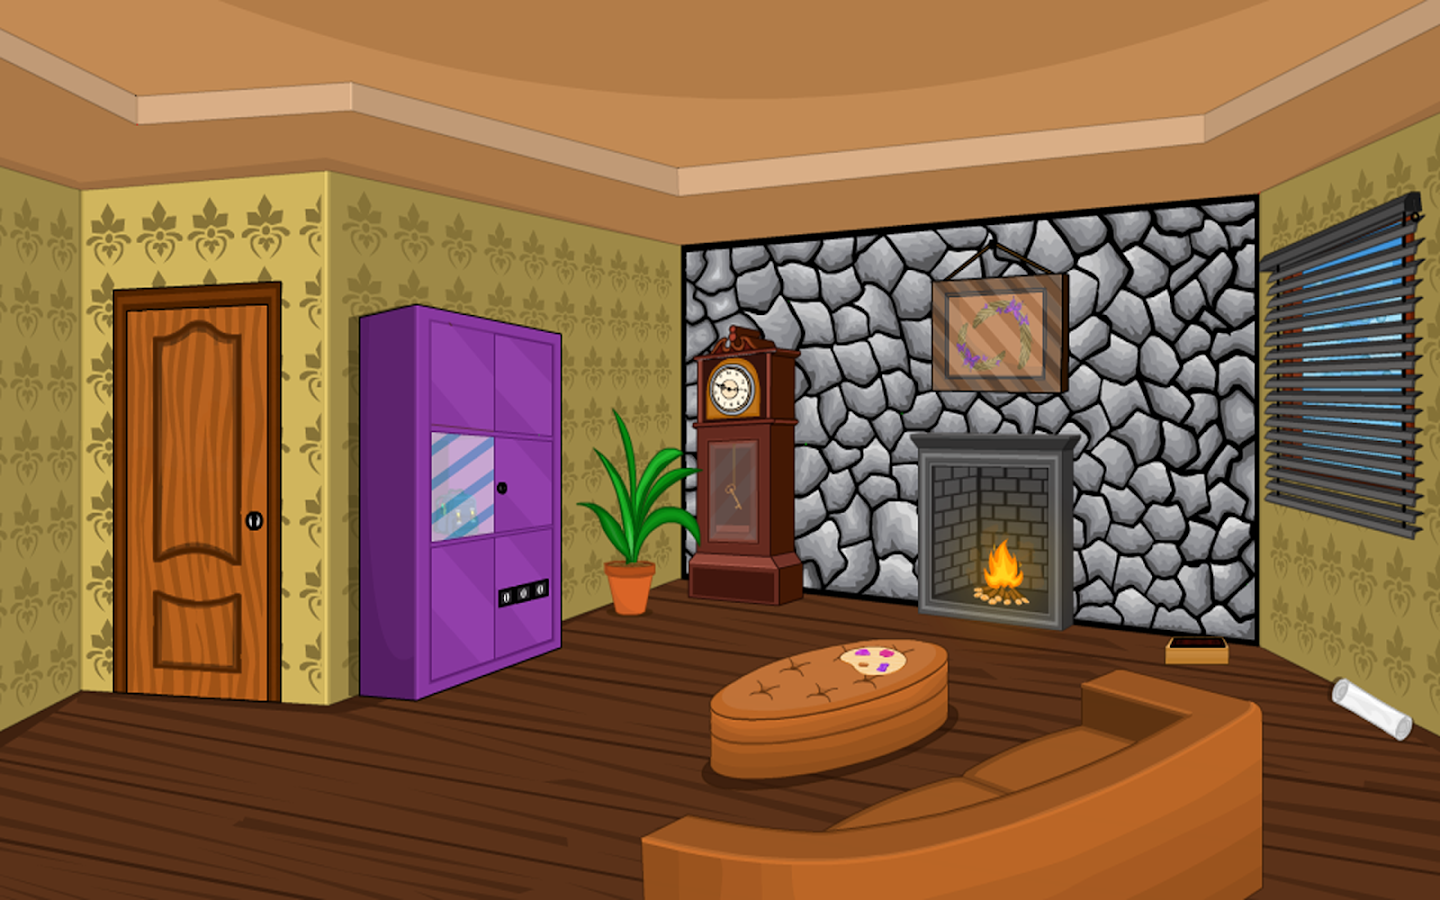 Escape puzzle drawing room 2 android apps on google play for Escape puzzle